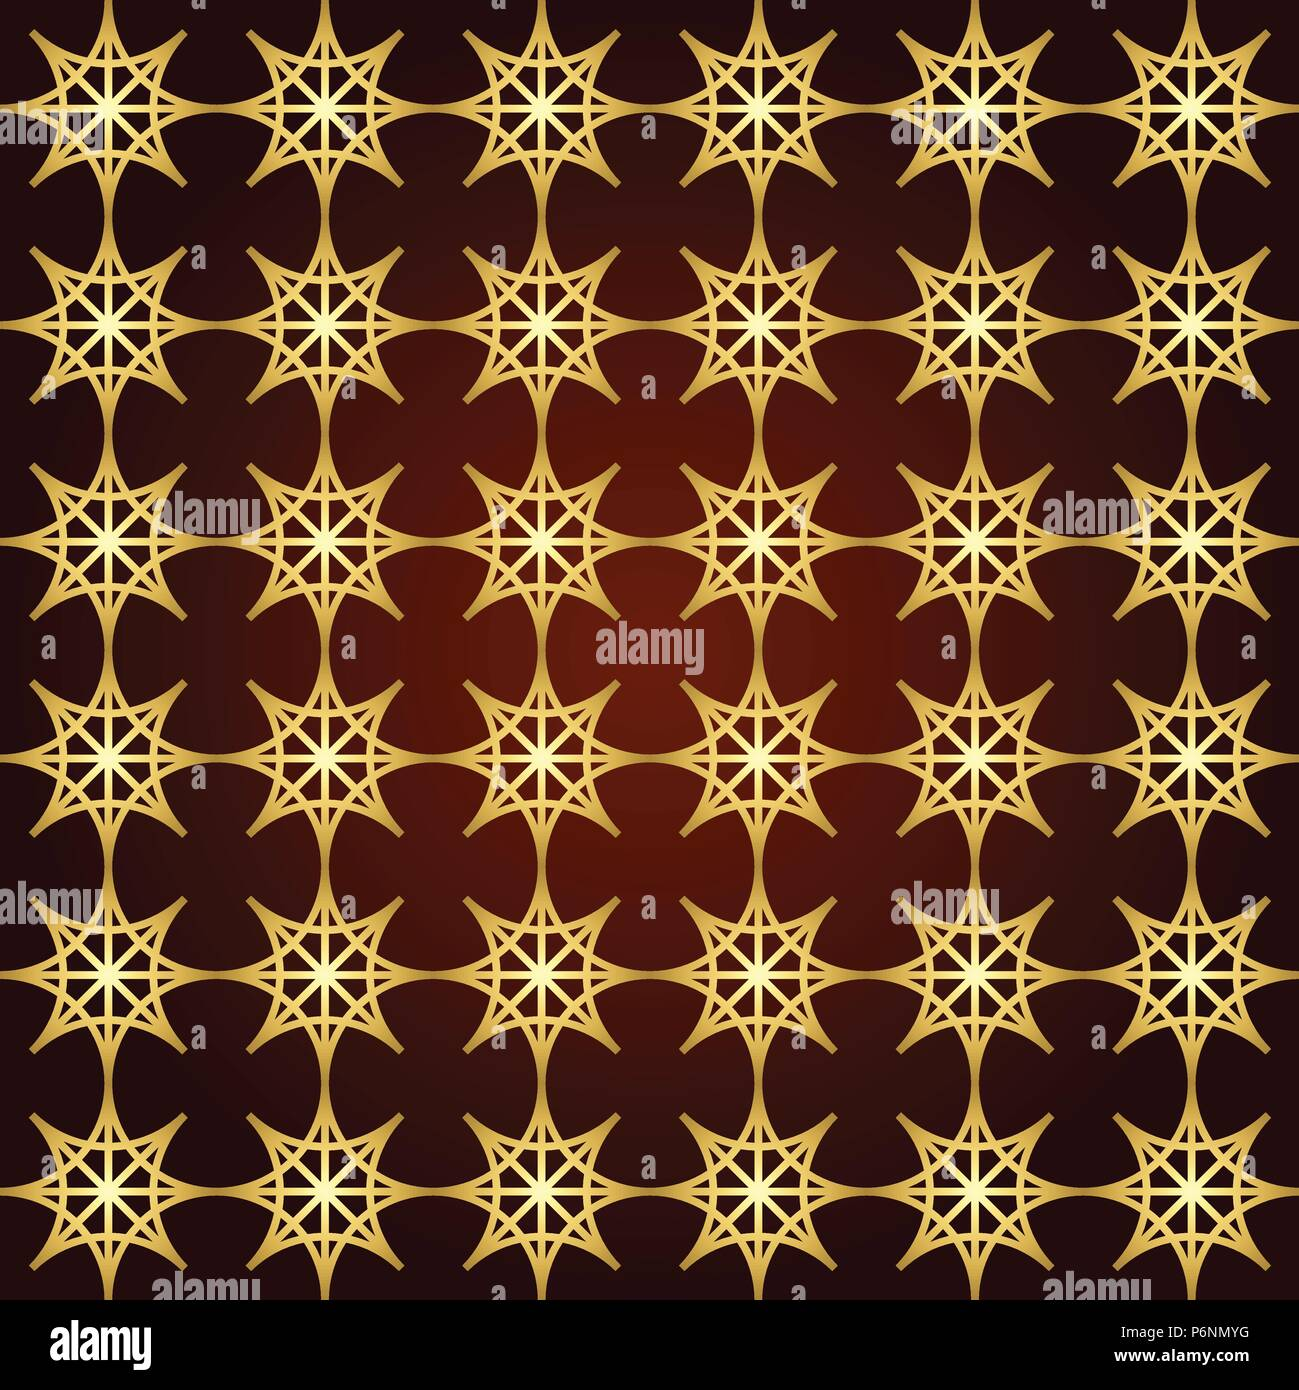 Gold four angle star seamless pattern on pastel background. Abstract star pattern in modern and vintage style for design. - Stock Vector